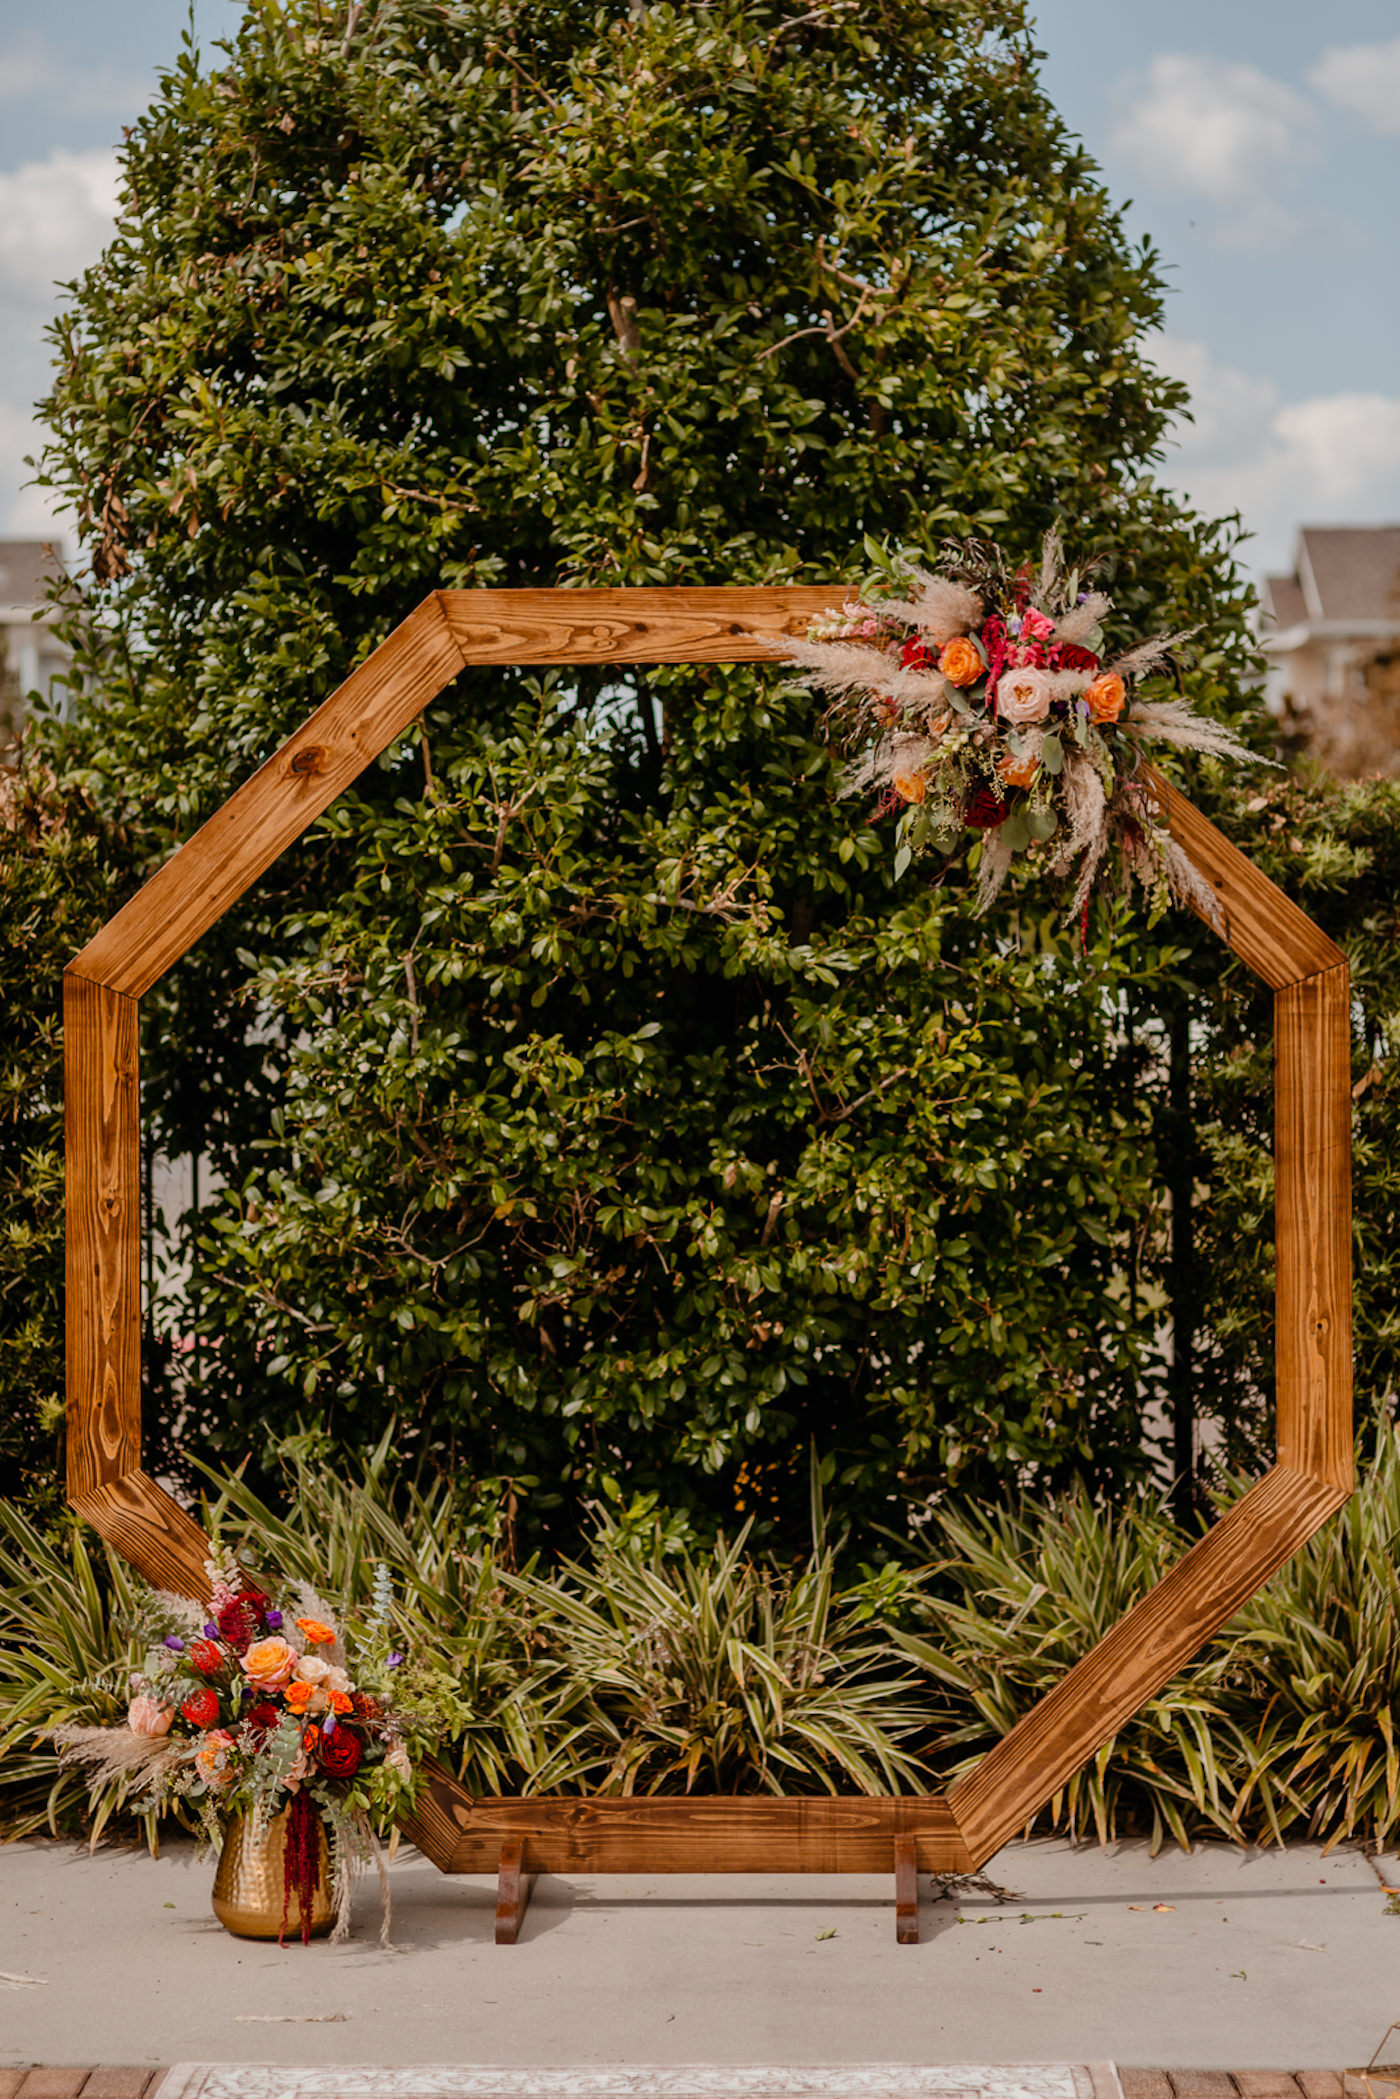 Boho Glam Wedding Ceremony Backdrop with Wood Geometric Arch and Colorful Orange Pink and Red Floral Arrangements with Pampas Grass | Tampa Wedding Florist Monarch Events and Designs